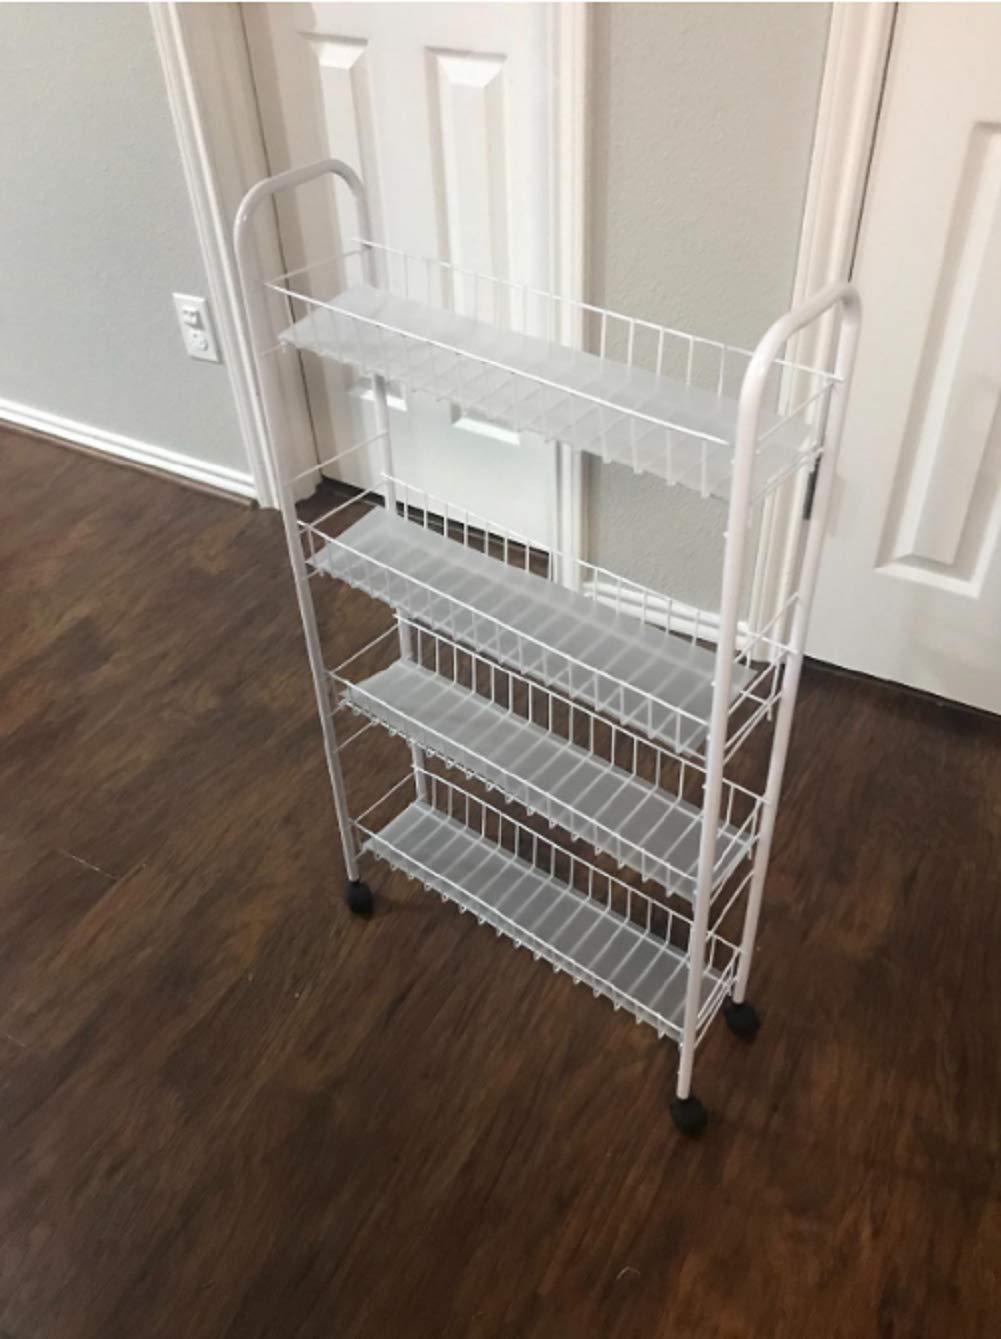 Yontree 3-Tiers Kitchen Storage Cart Gap Storage Rack with Mesh Wire Basket Rolling Cart on 4 Wheels